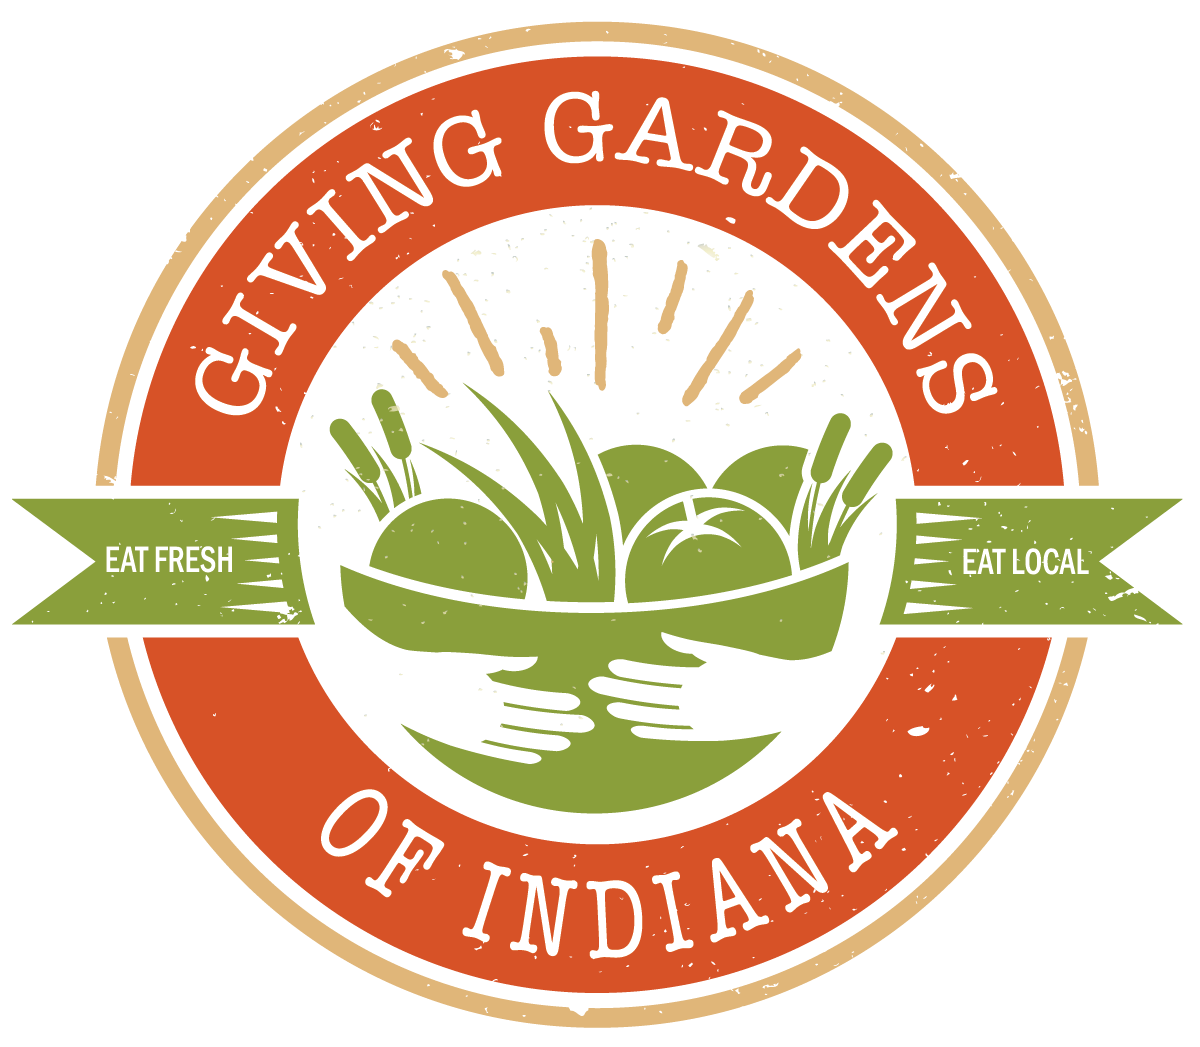 Giving Gardens of Indiana